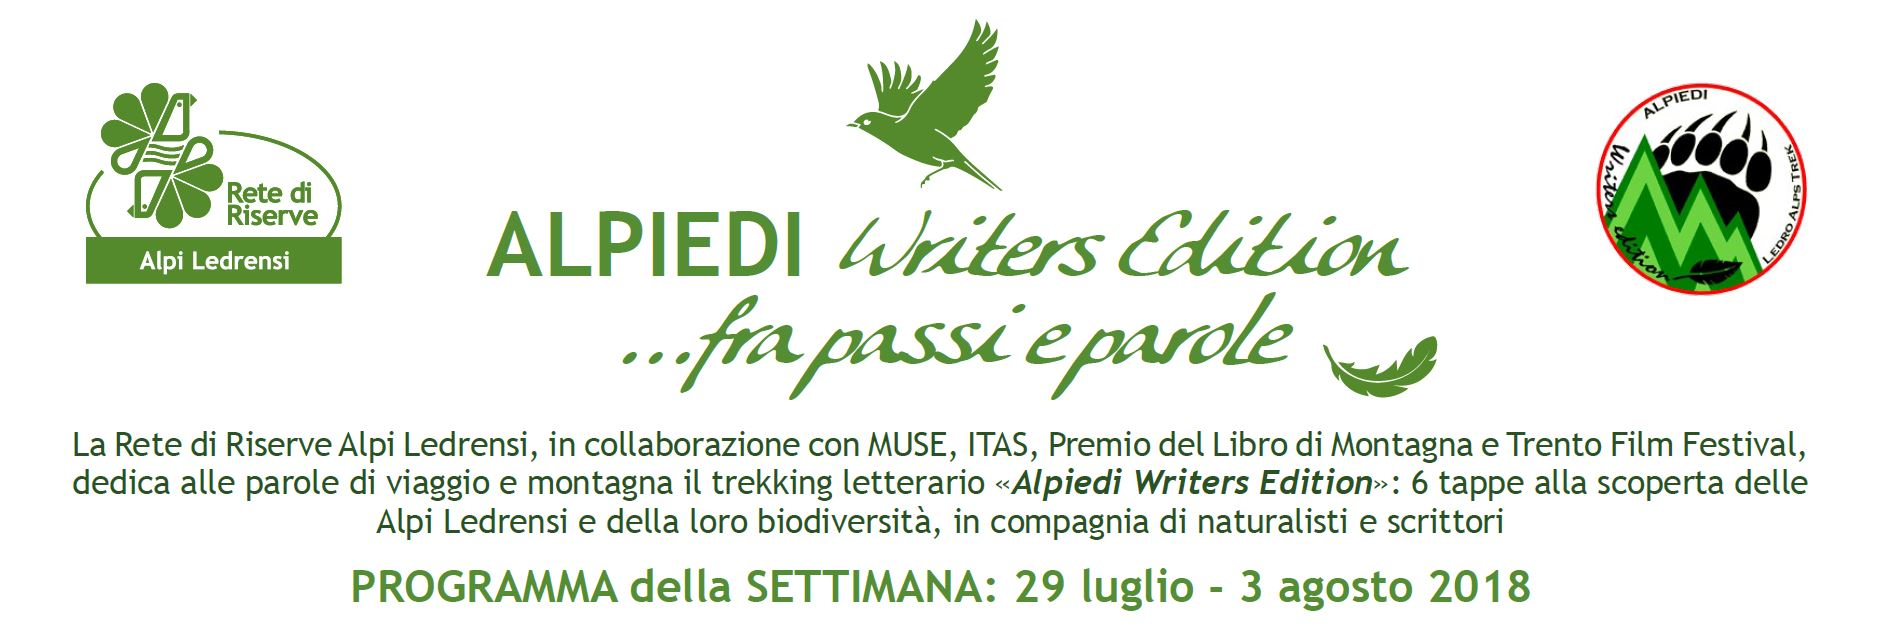 ALPIEDI - Writers Edition